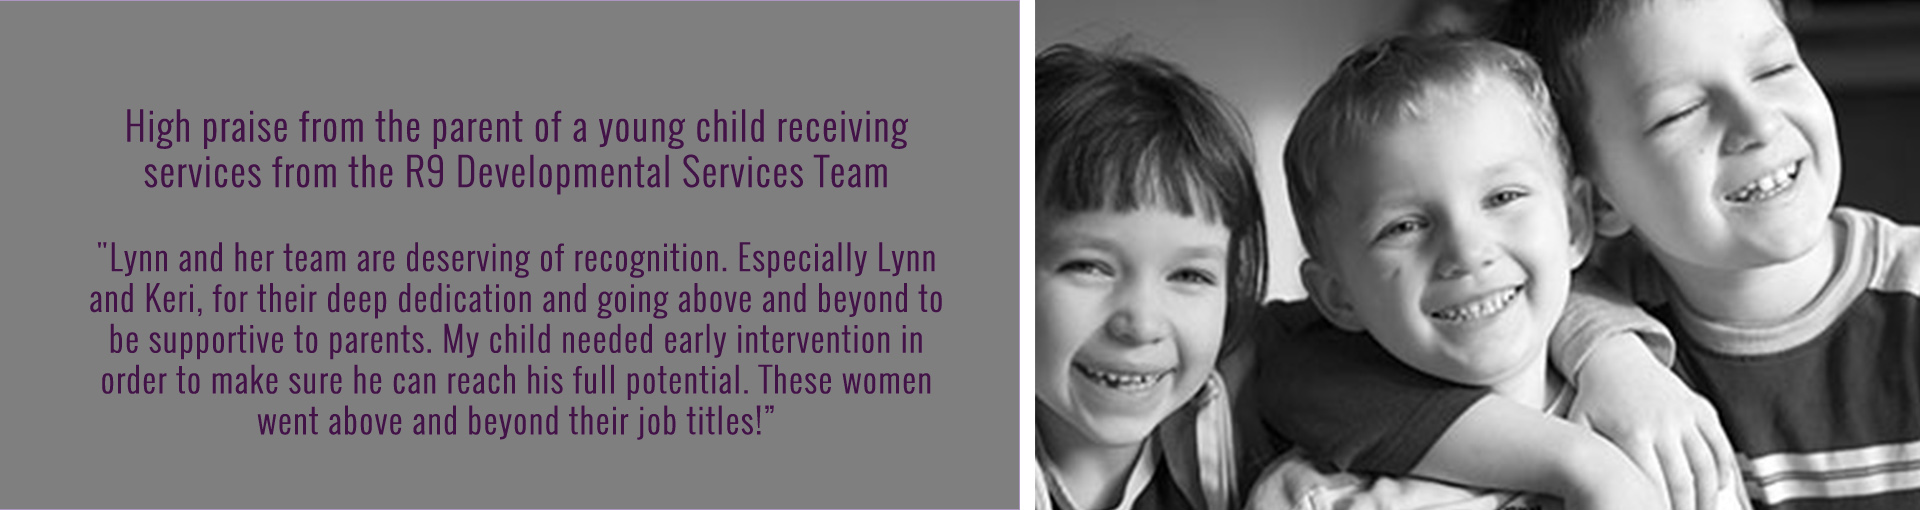 High praise from the parent of a young child receiving services from the R9 Developmental Services Team